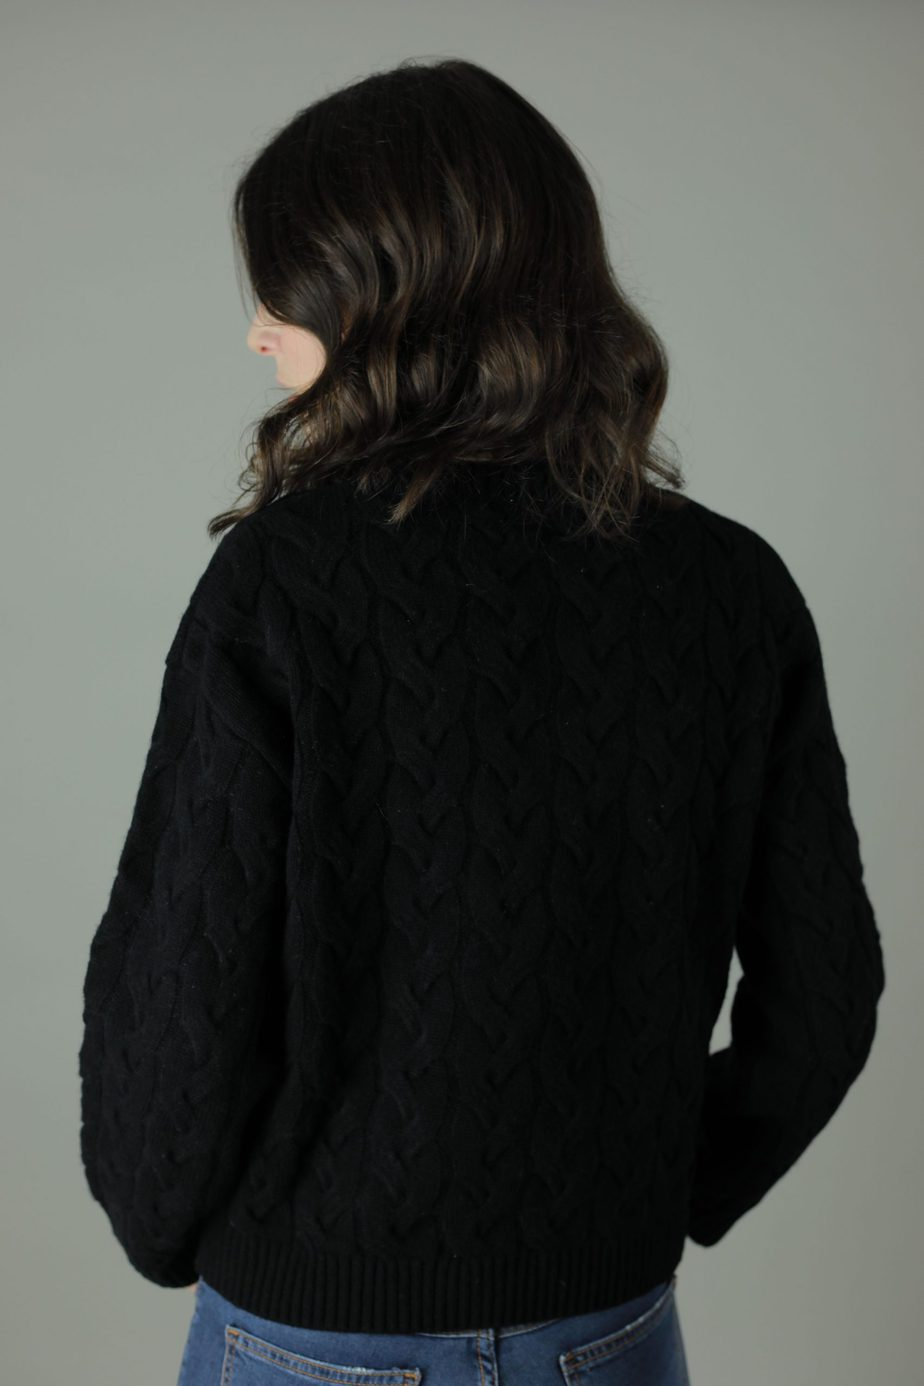 The 100% cashmere Cable-Knit Lana sweater is the luxurious feel you need against your skin this year. Luxuriously woven to give you the perfect look and feel of luxury offered in three different colours with an option of straight edge or scallop edge in our quality cashmere collection. Back view.